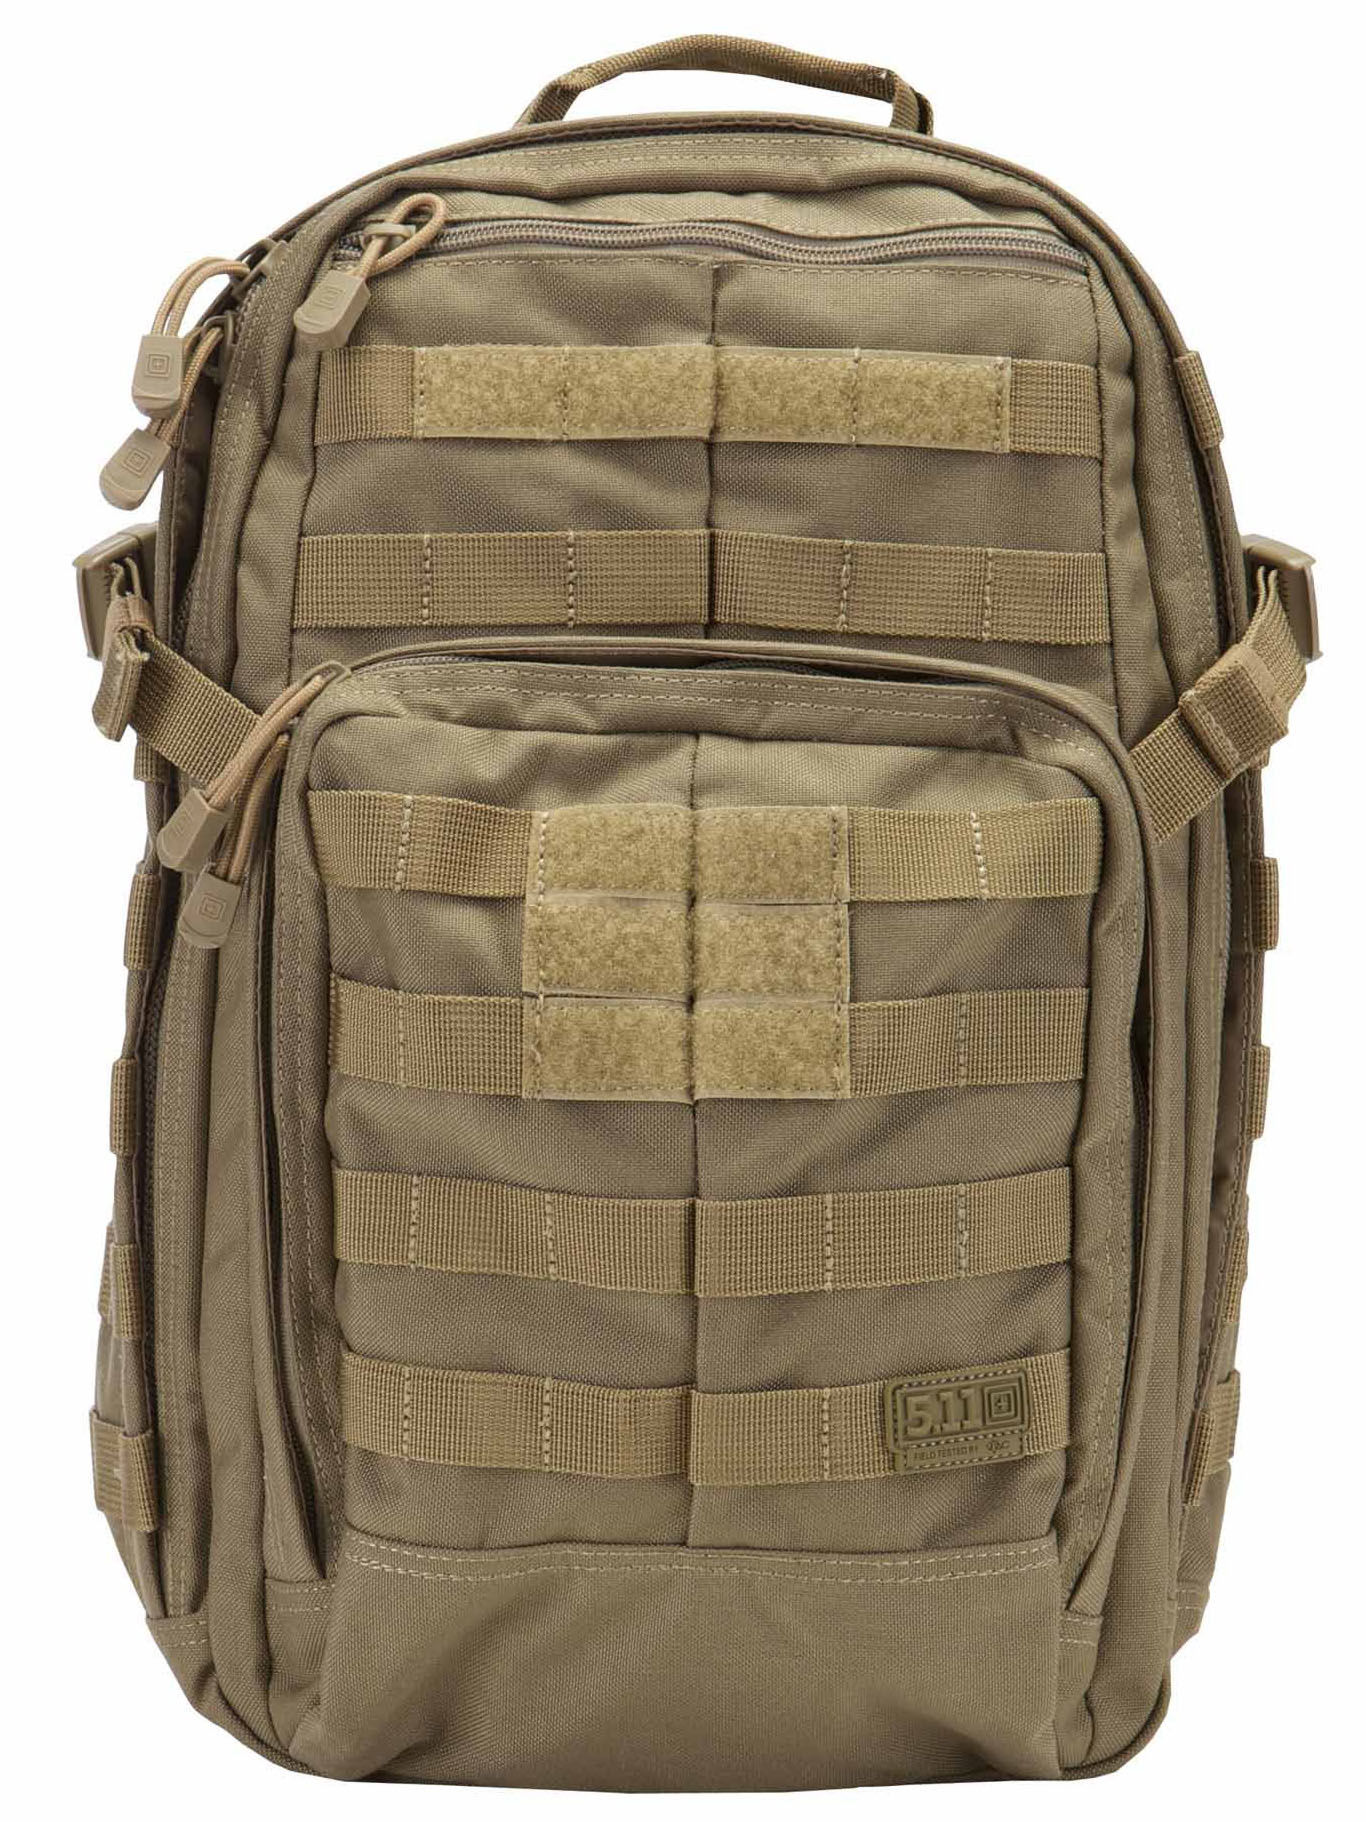 5.11 Tactical Rush 12 Backpack (M) Sandstone